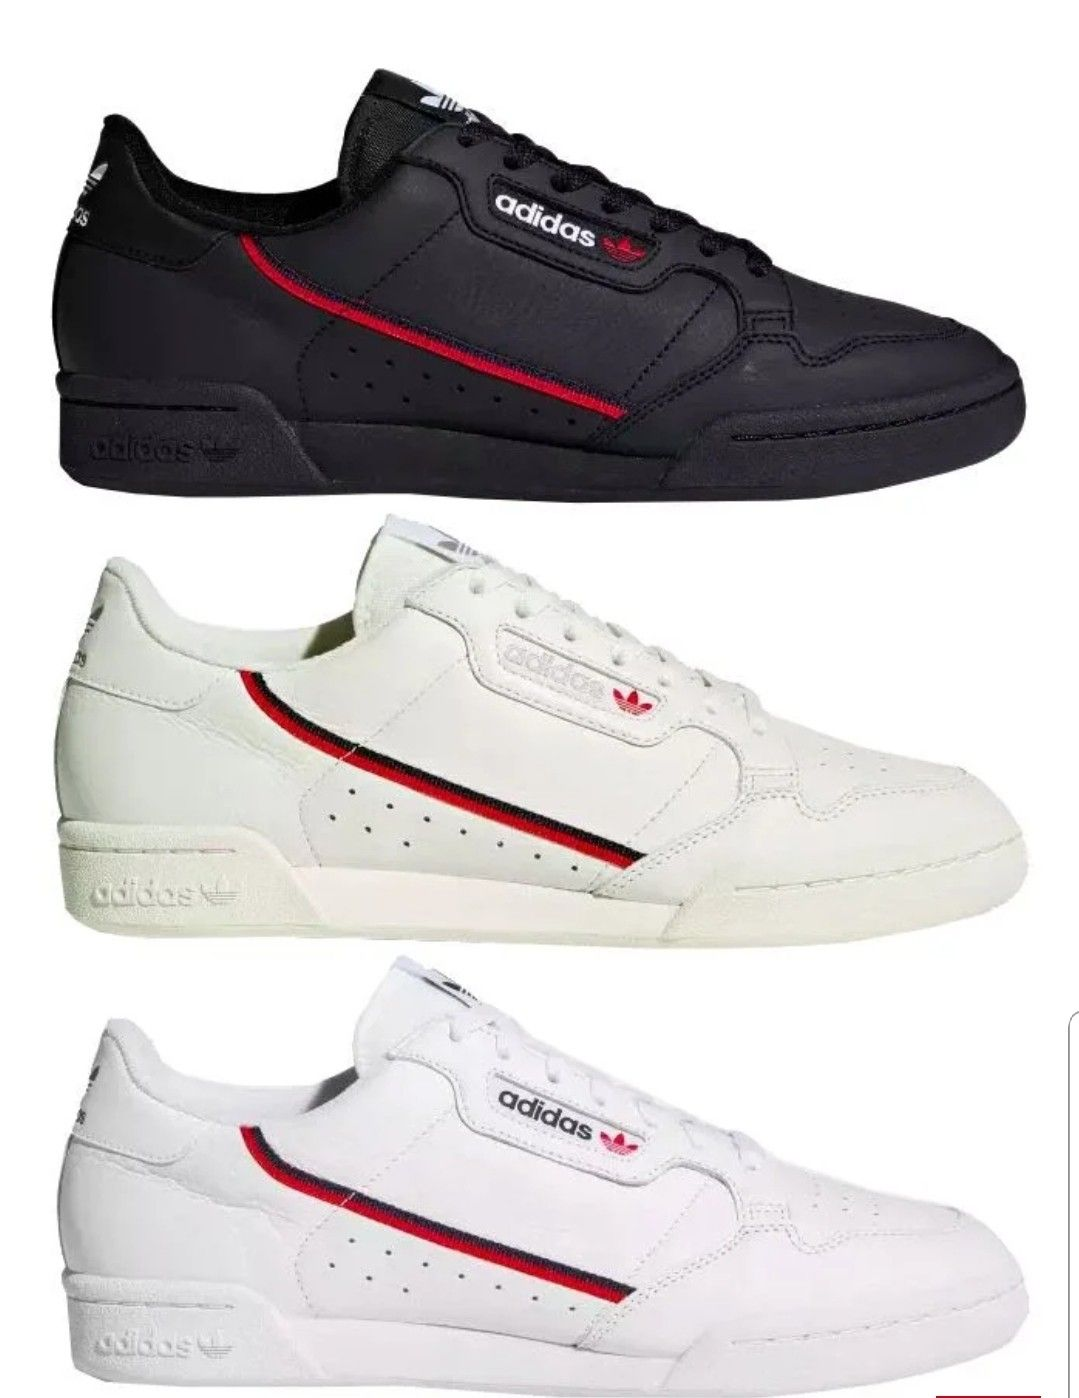 huge selection of c3abf 0fdb1 Adidas Continental 80. Encuentra este Pin y muchos más en Sneakers  Boots,  de Kimberly Brown. Etiquetas. Zapatillas Adidas · Zapatos Planos